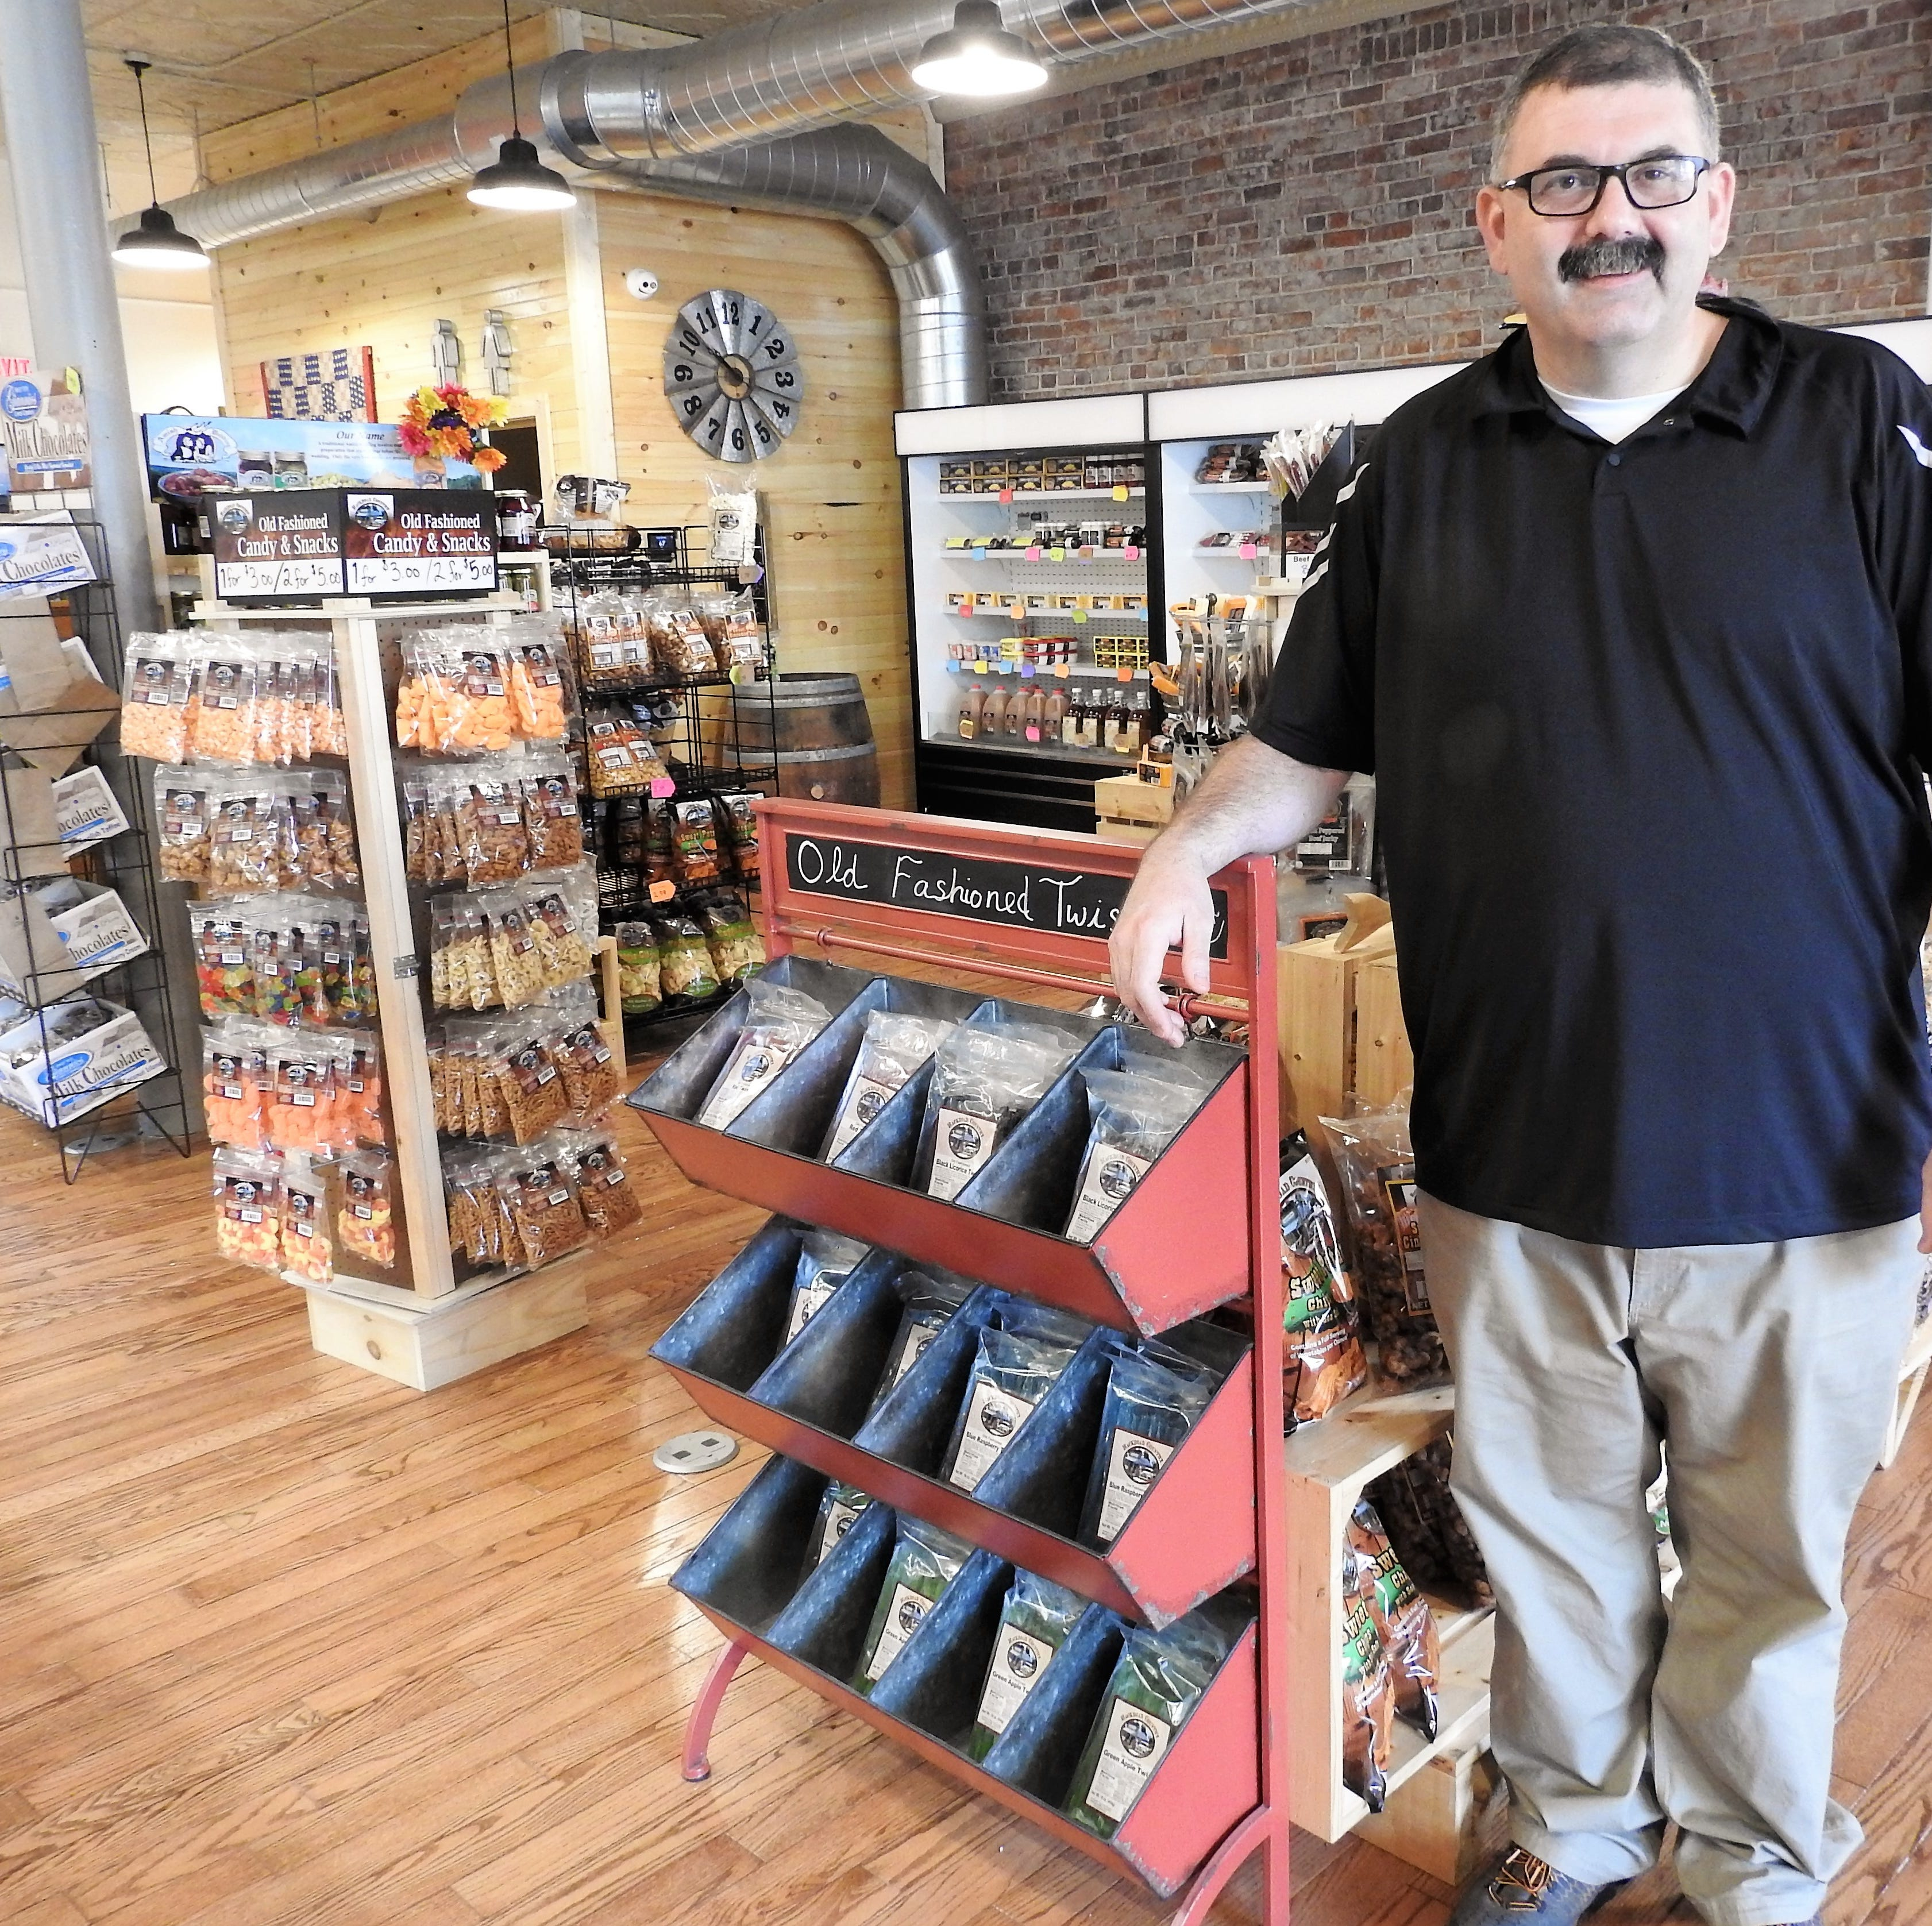 Ridgewood General Store is dedicated to its community